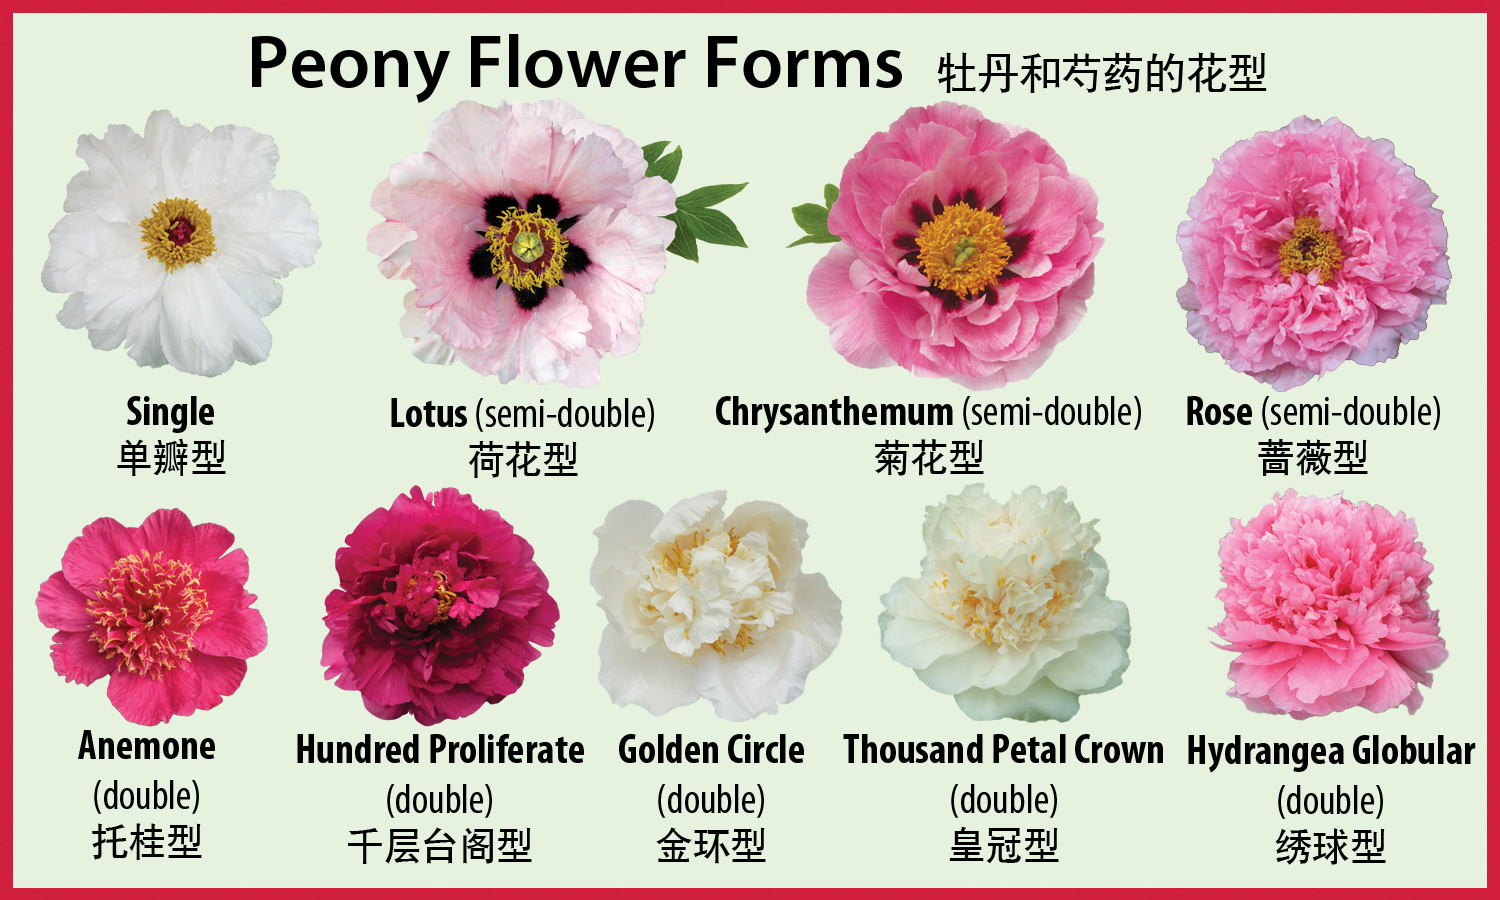 Peony flower forms crickethillgarden the classical chinese system for identifying peony flower forms mightylinksfo